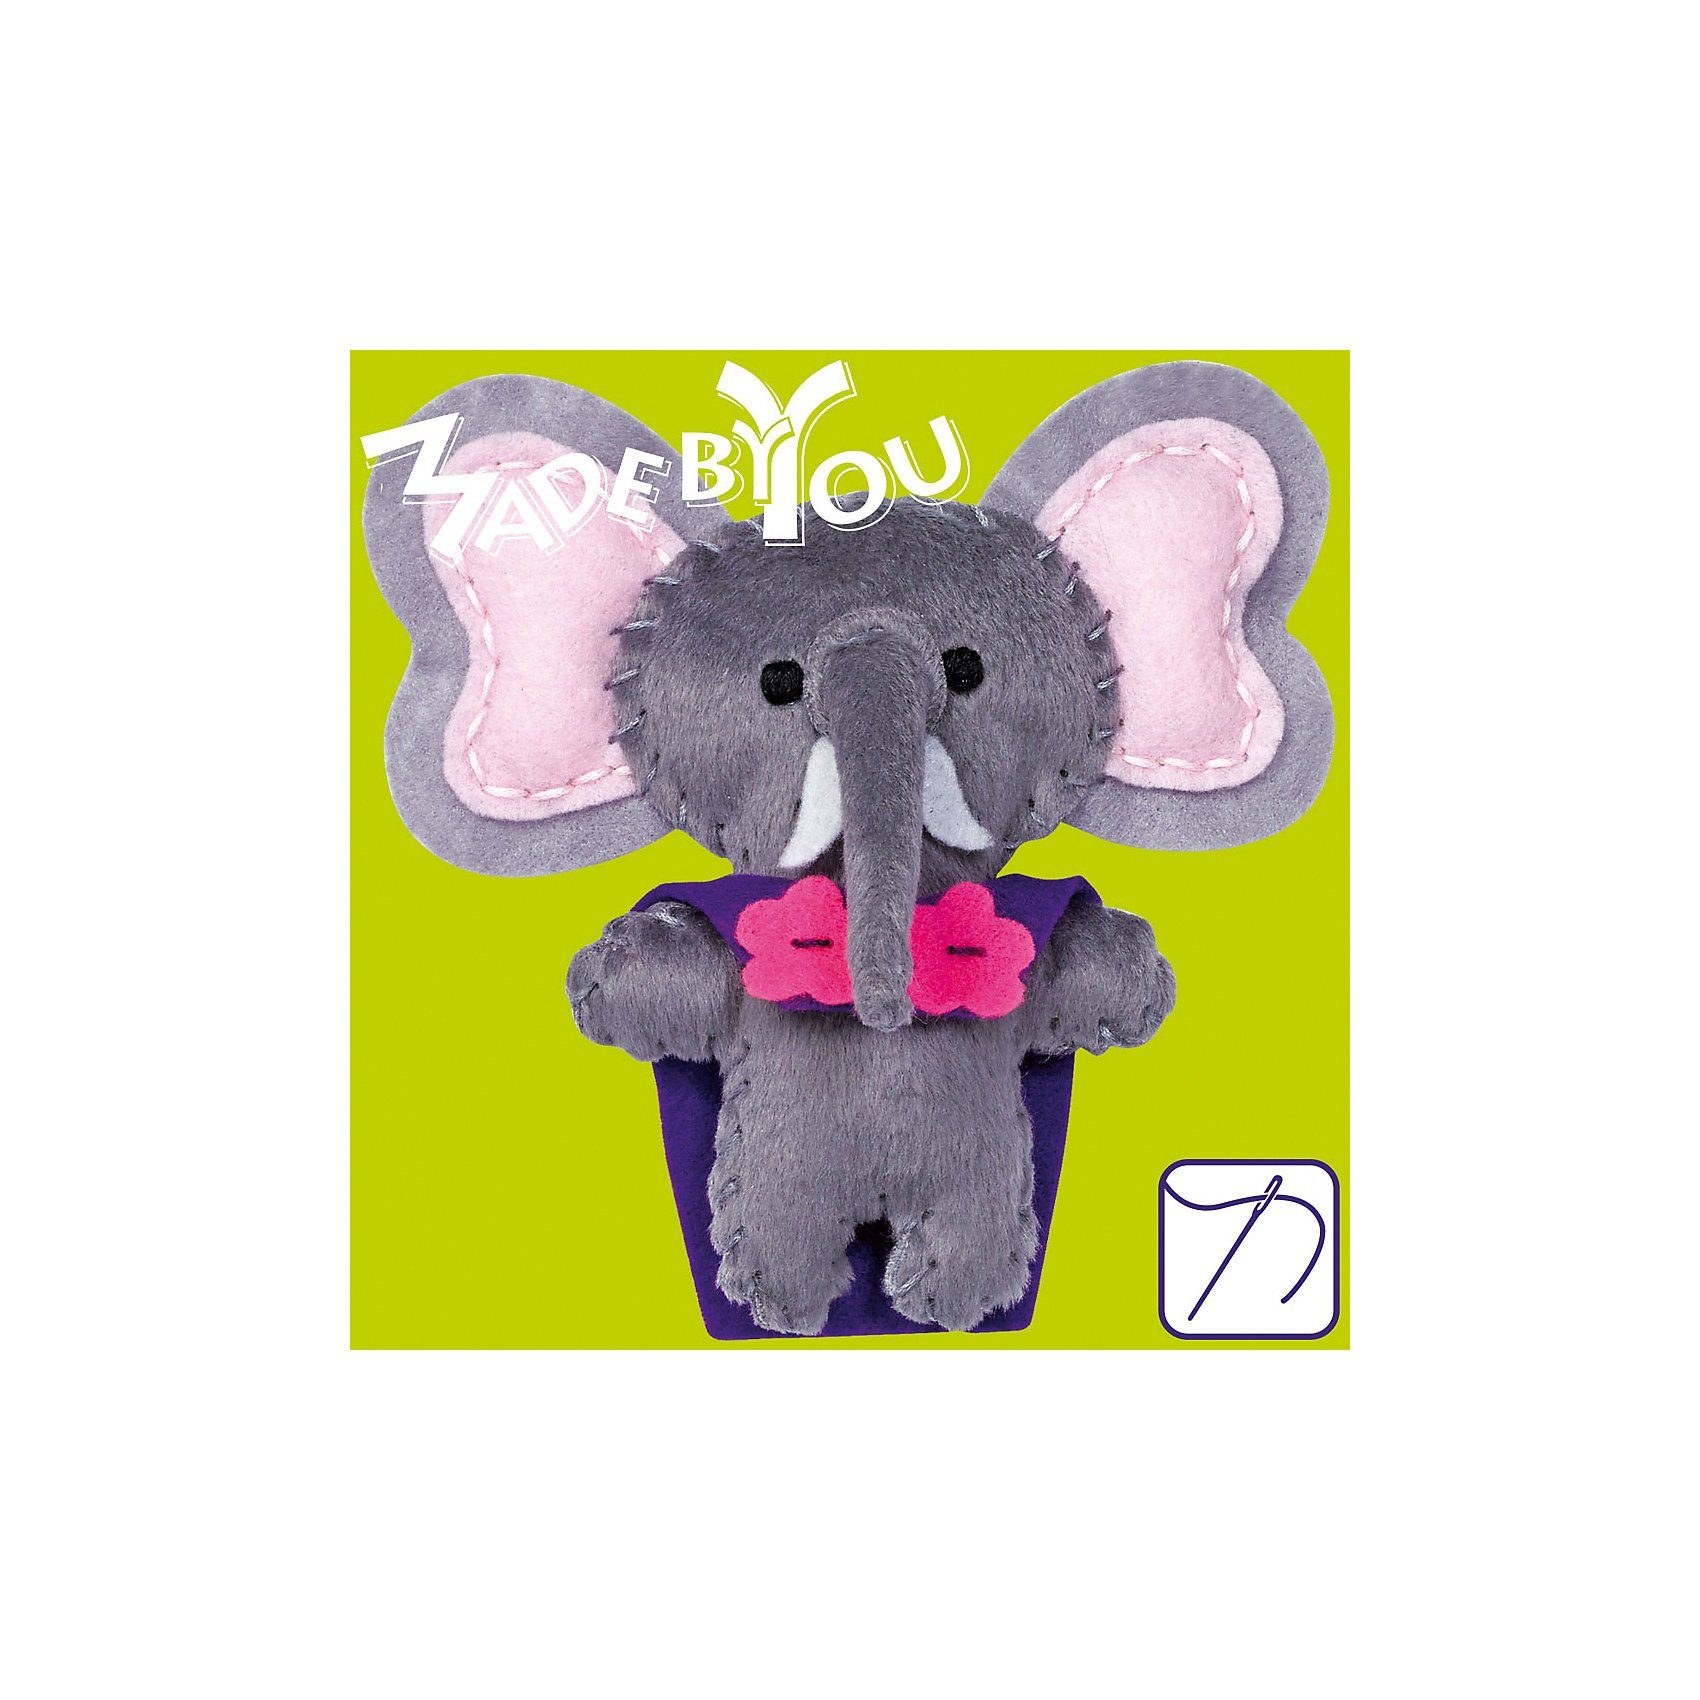 Busch MADE BY YOU Nähset Elefant